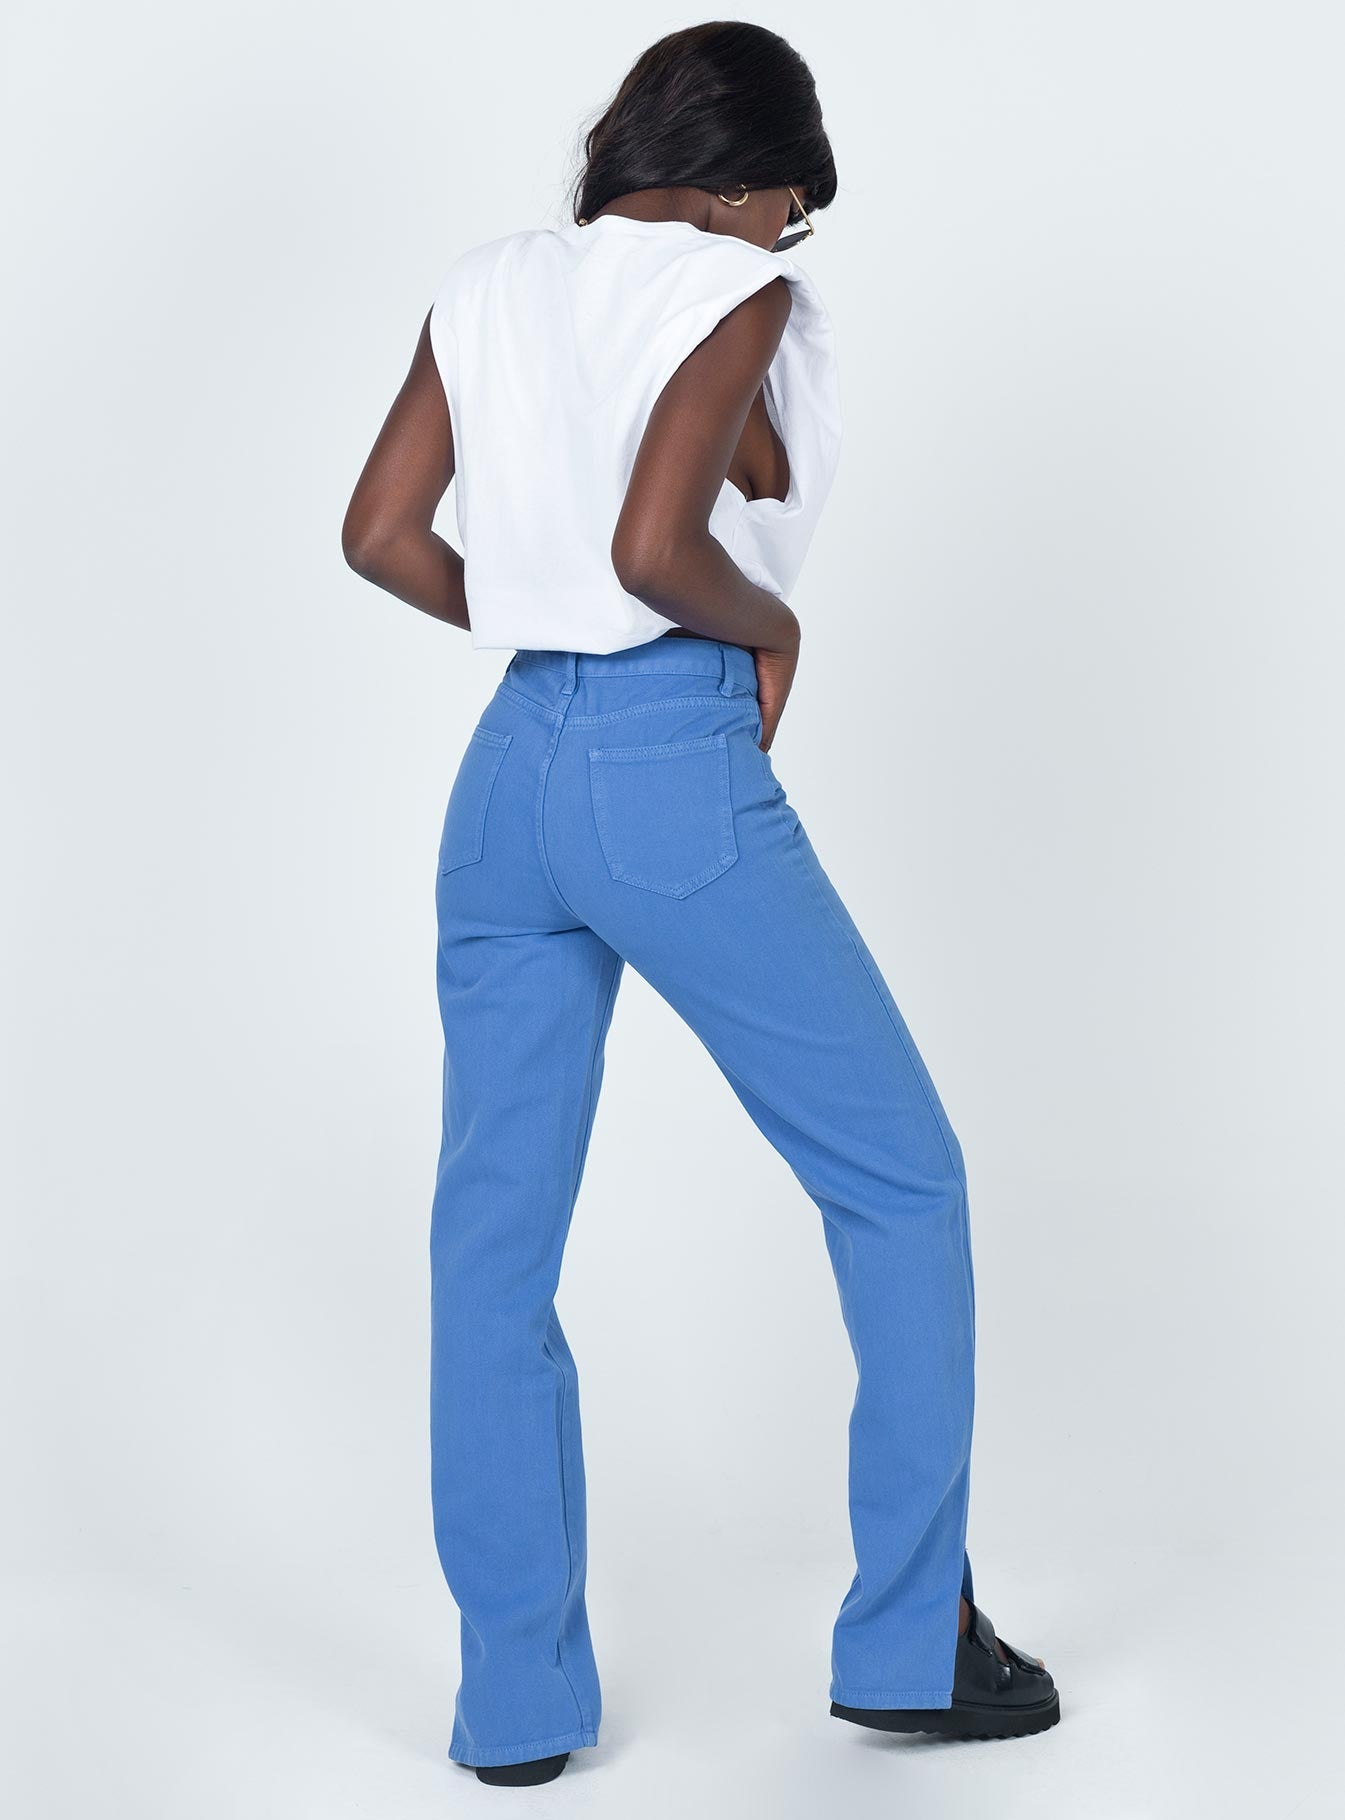 Alabama Jeans Blue